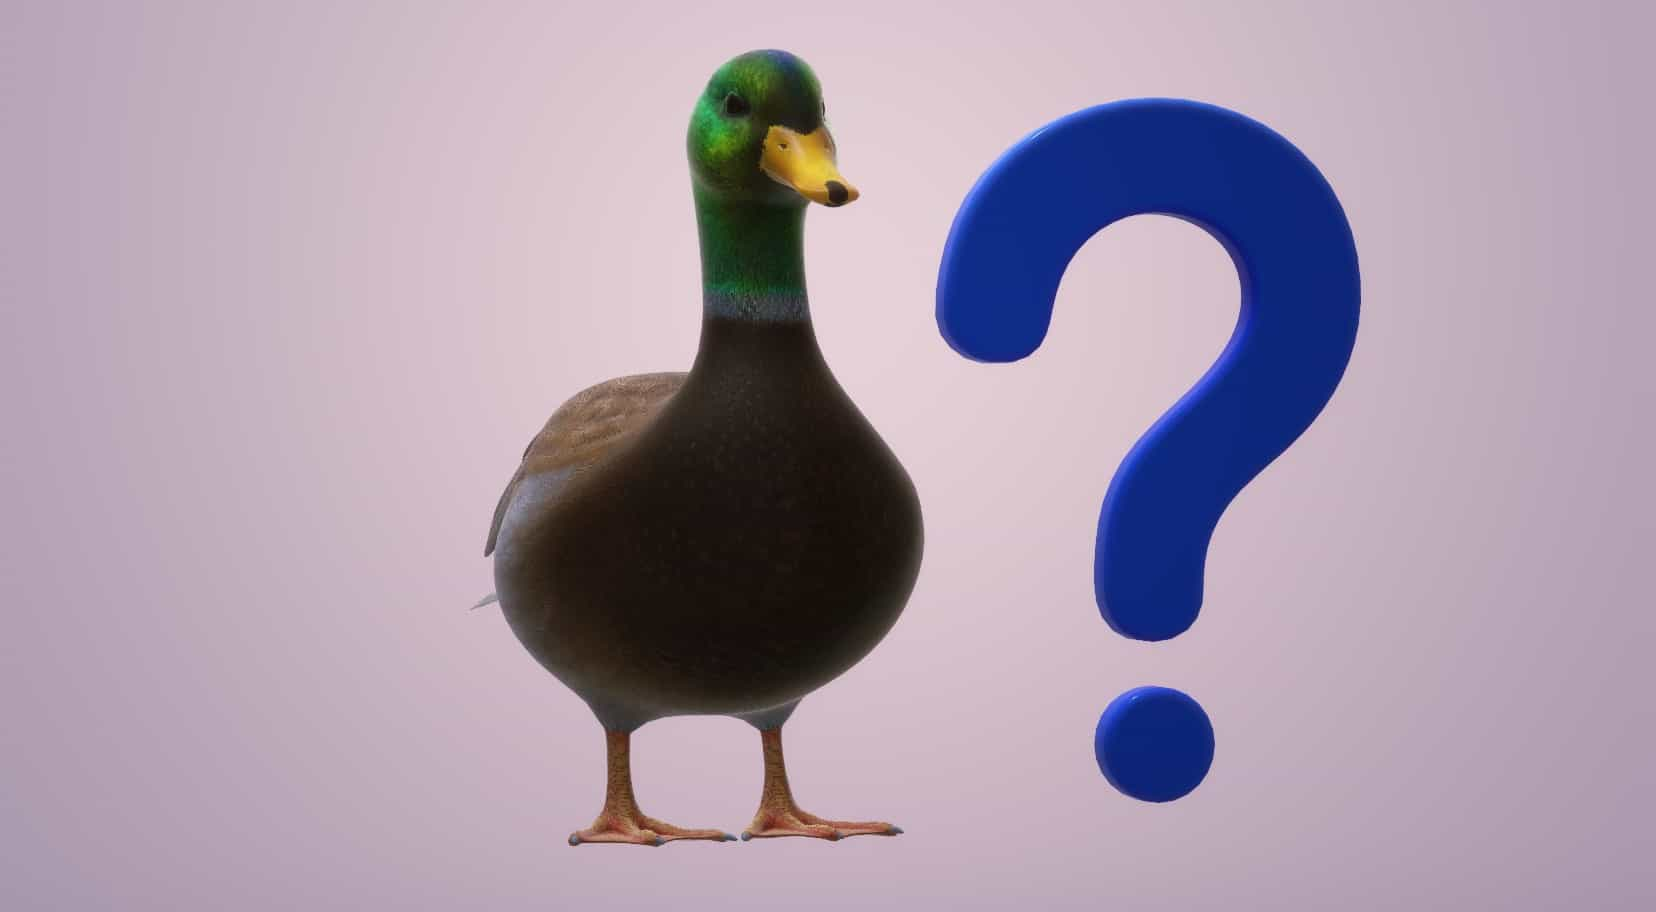 duck with question mark